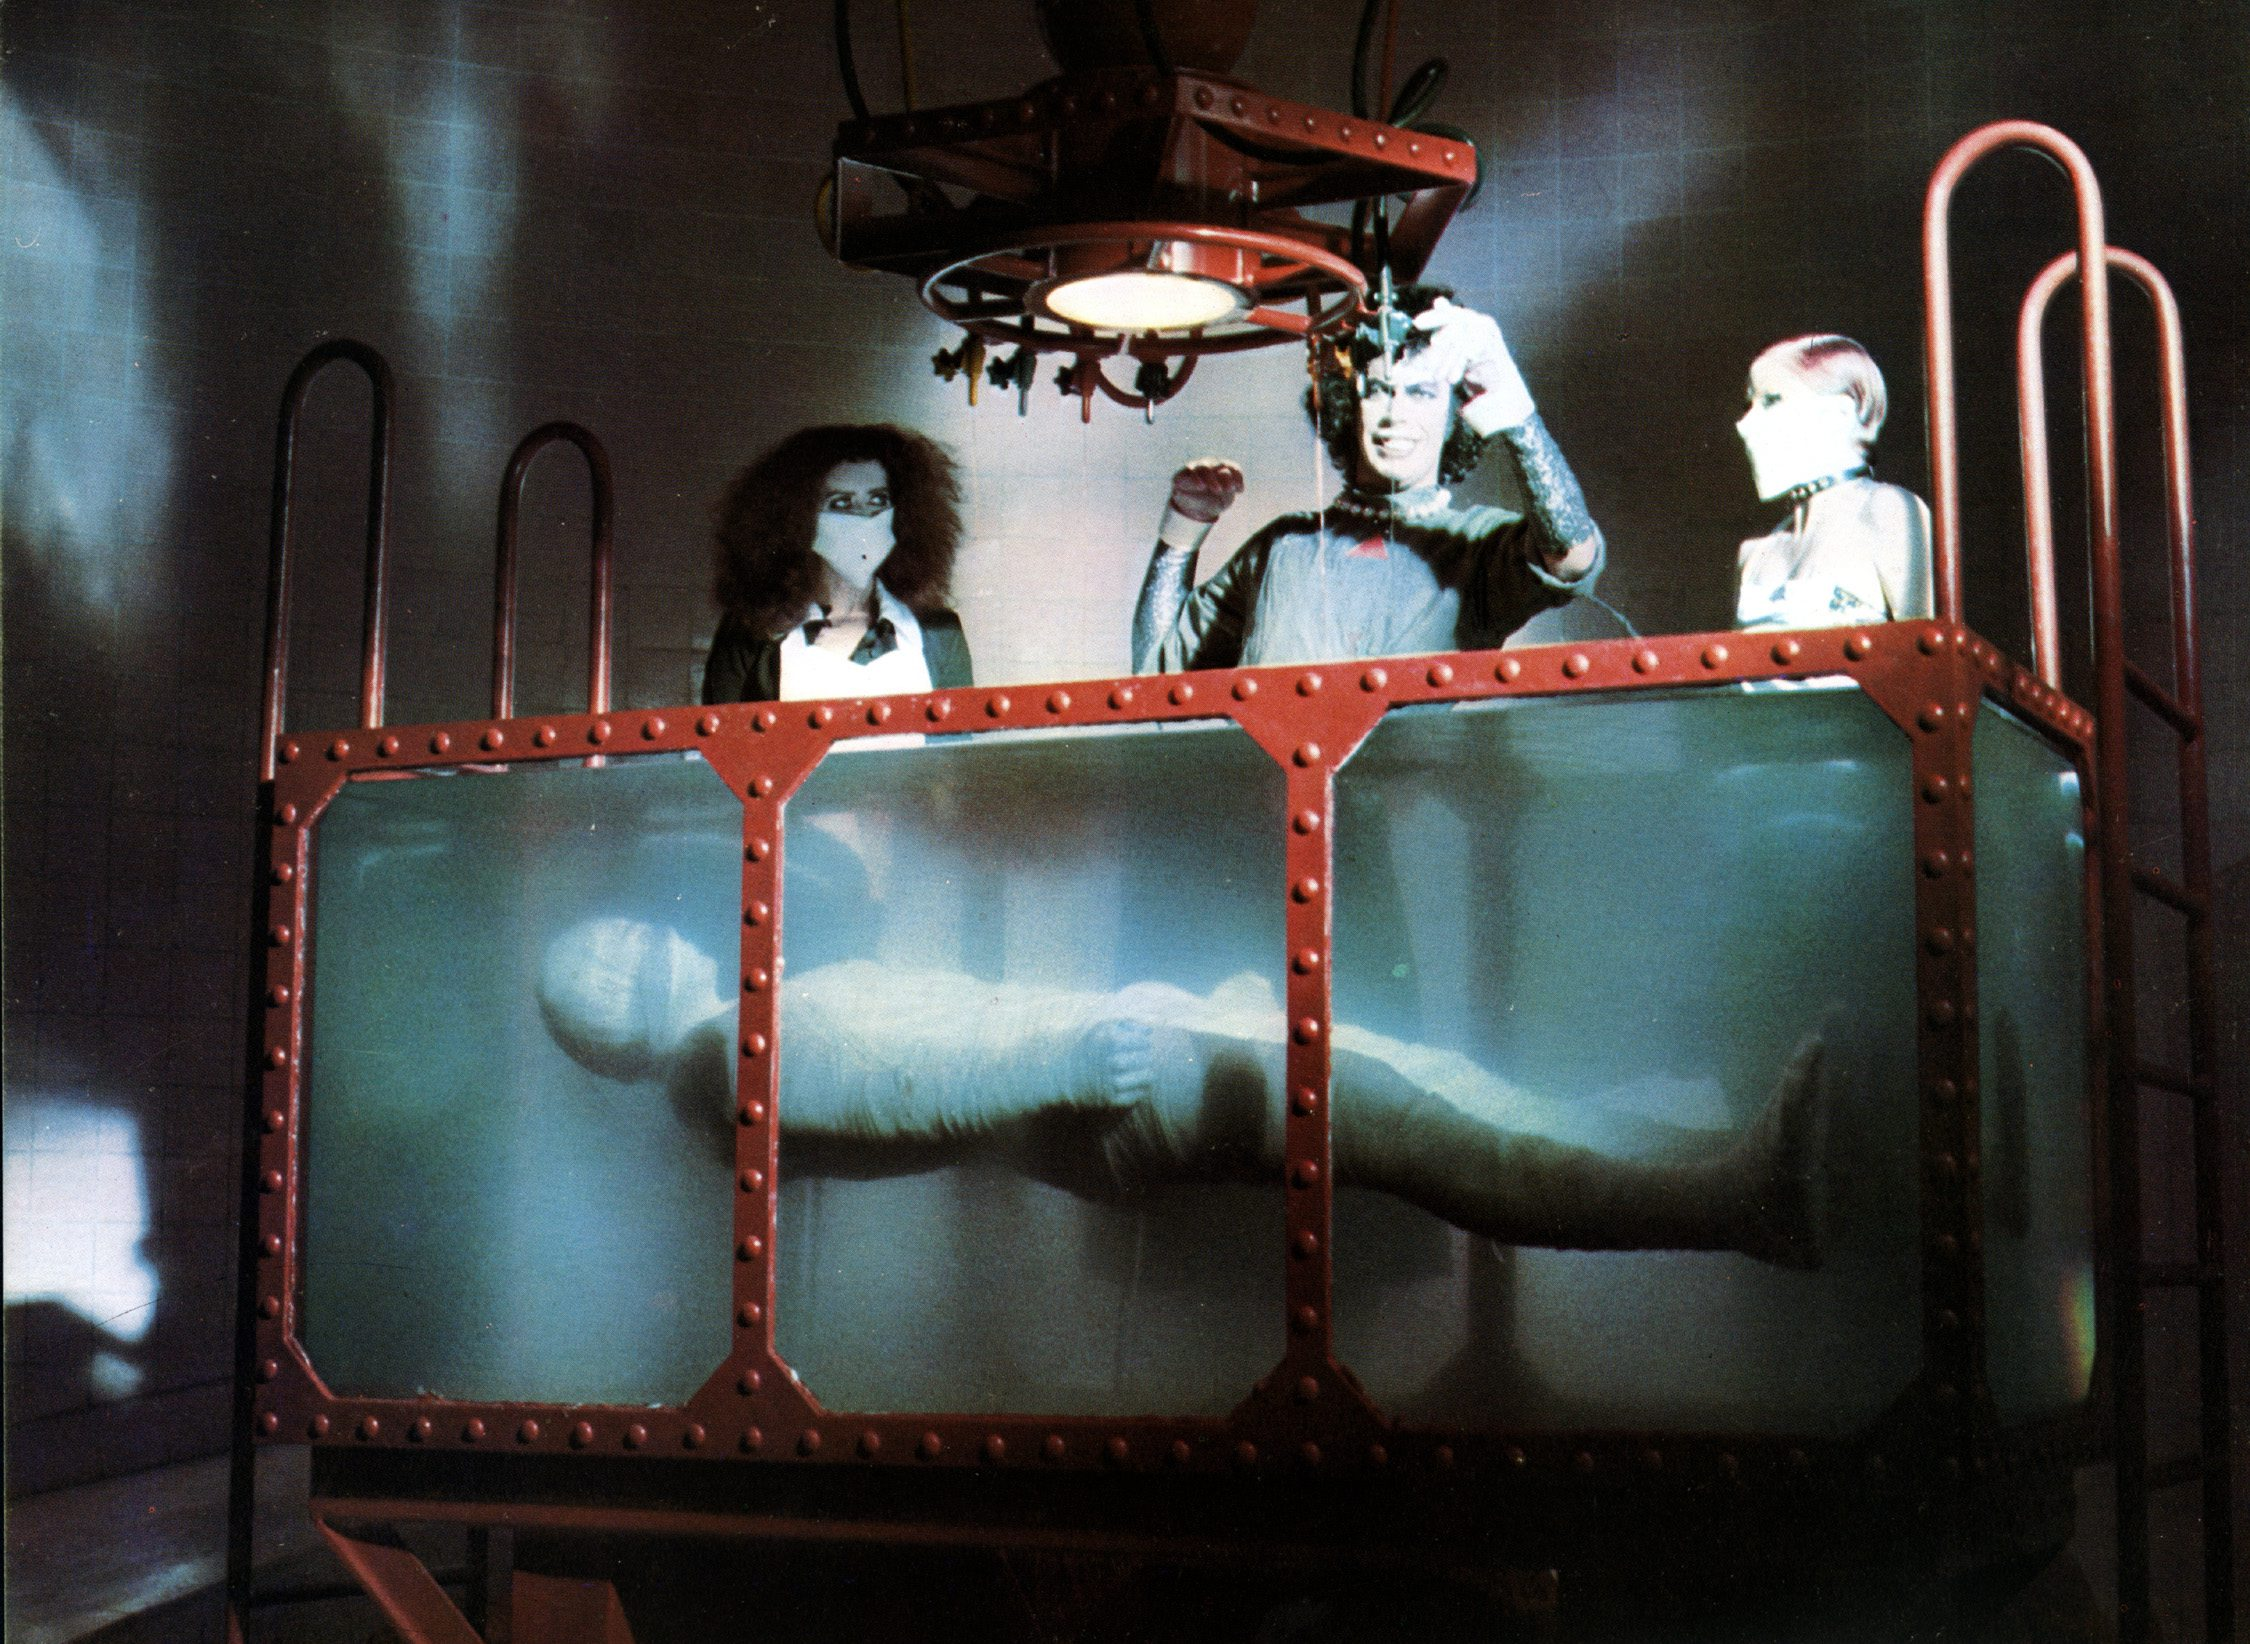 THE ROCKY HORROR PICTURE SHOW [BR / US 1975] THE ROCKY HORROR PICTURE SHOW [BR / US 1975]  PATRICIA QUINN, TIM CURRY, NELL CA